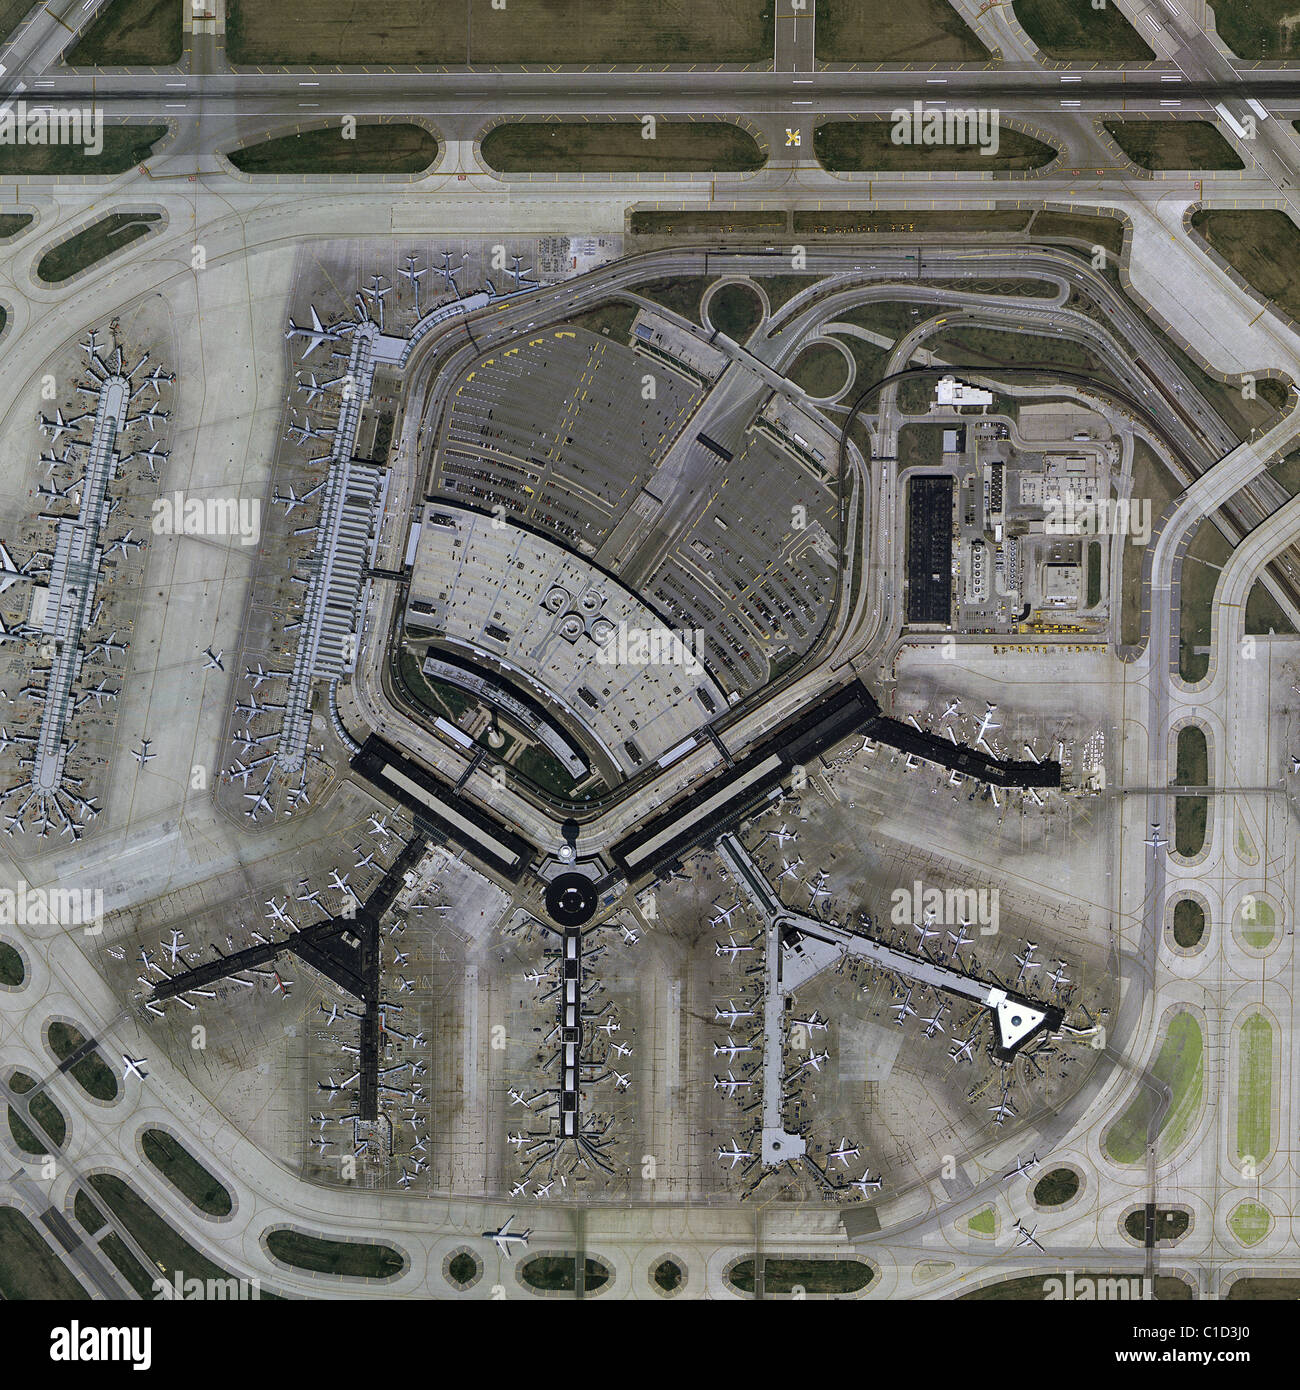 aerial map view above Chicago OHare International Airport